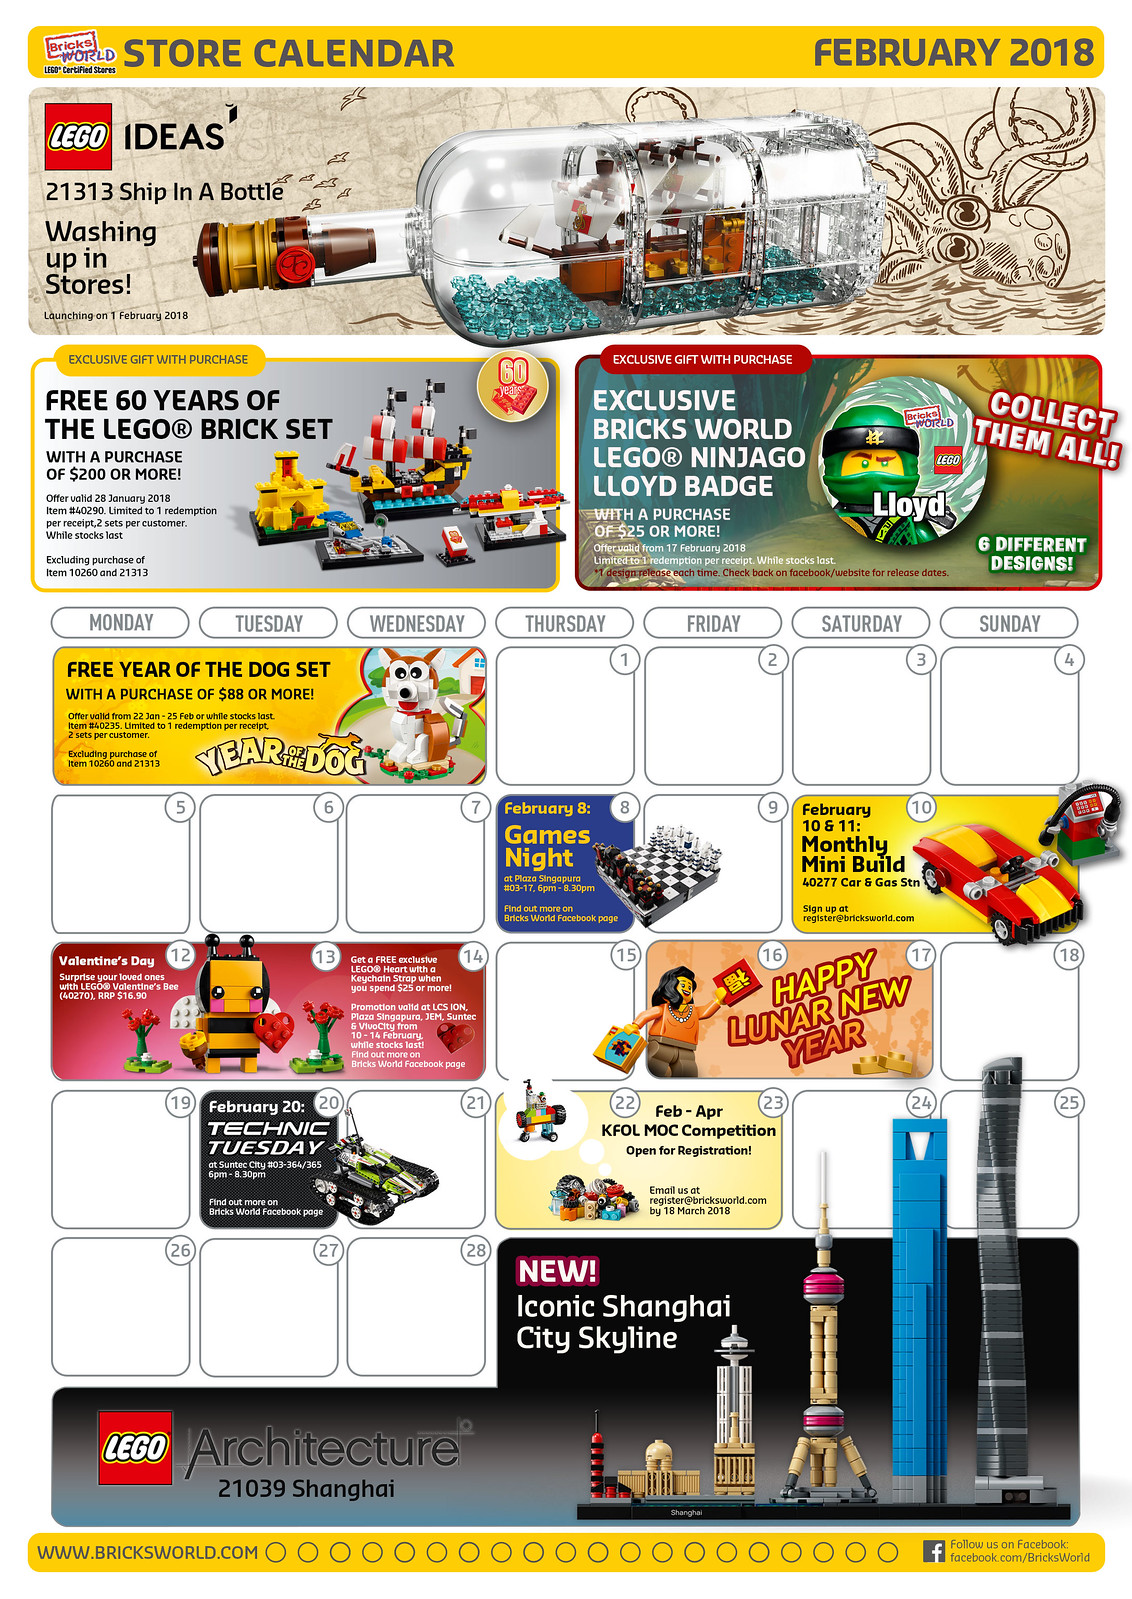 Bricksworld LEGO Certified Store February 2018 Store Calendar